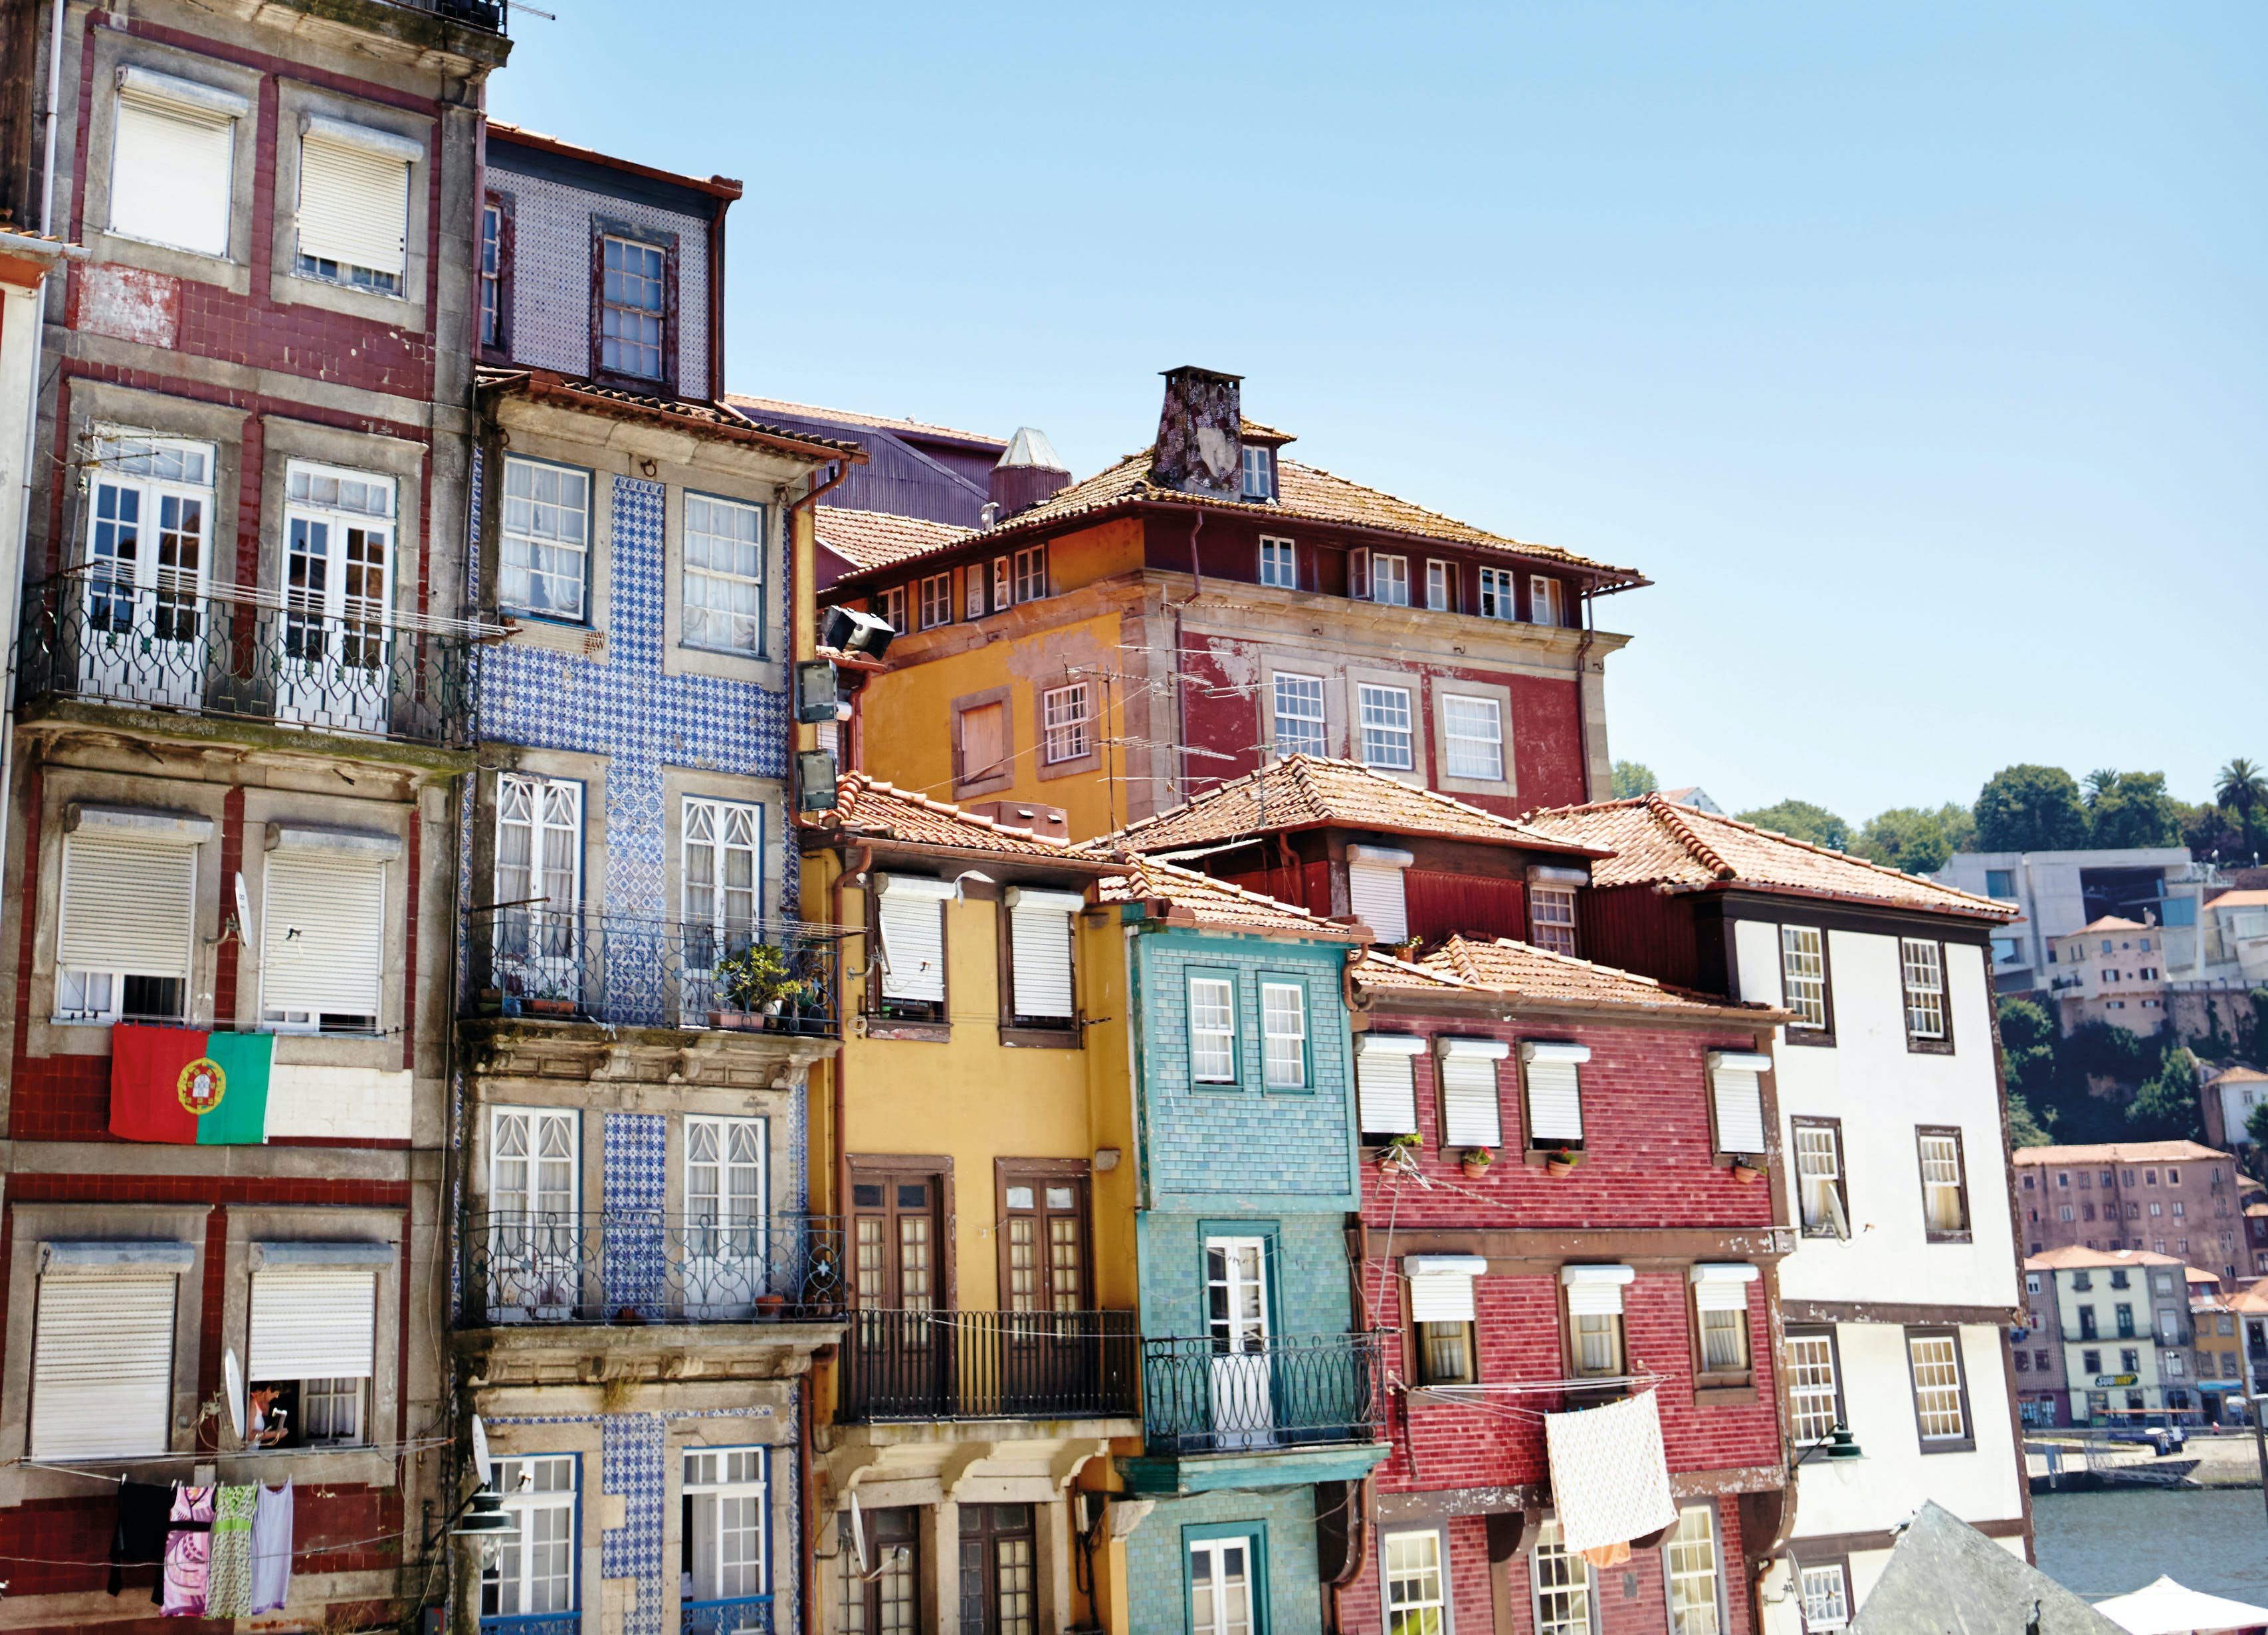 Houses with traditional tiled facades line the riverfront of Porto © Matt Munro / Lonely Planet